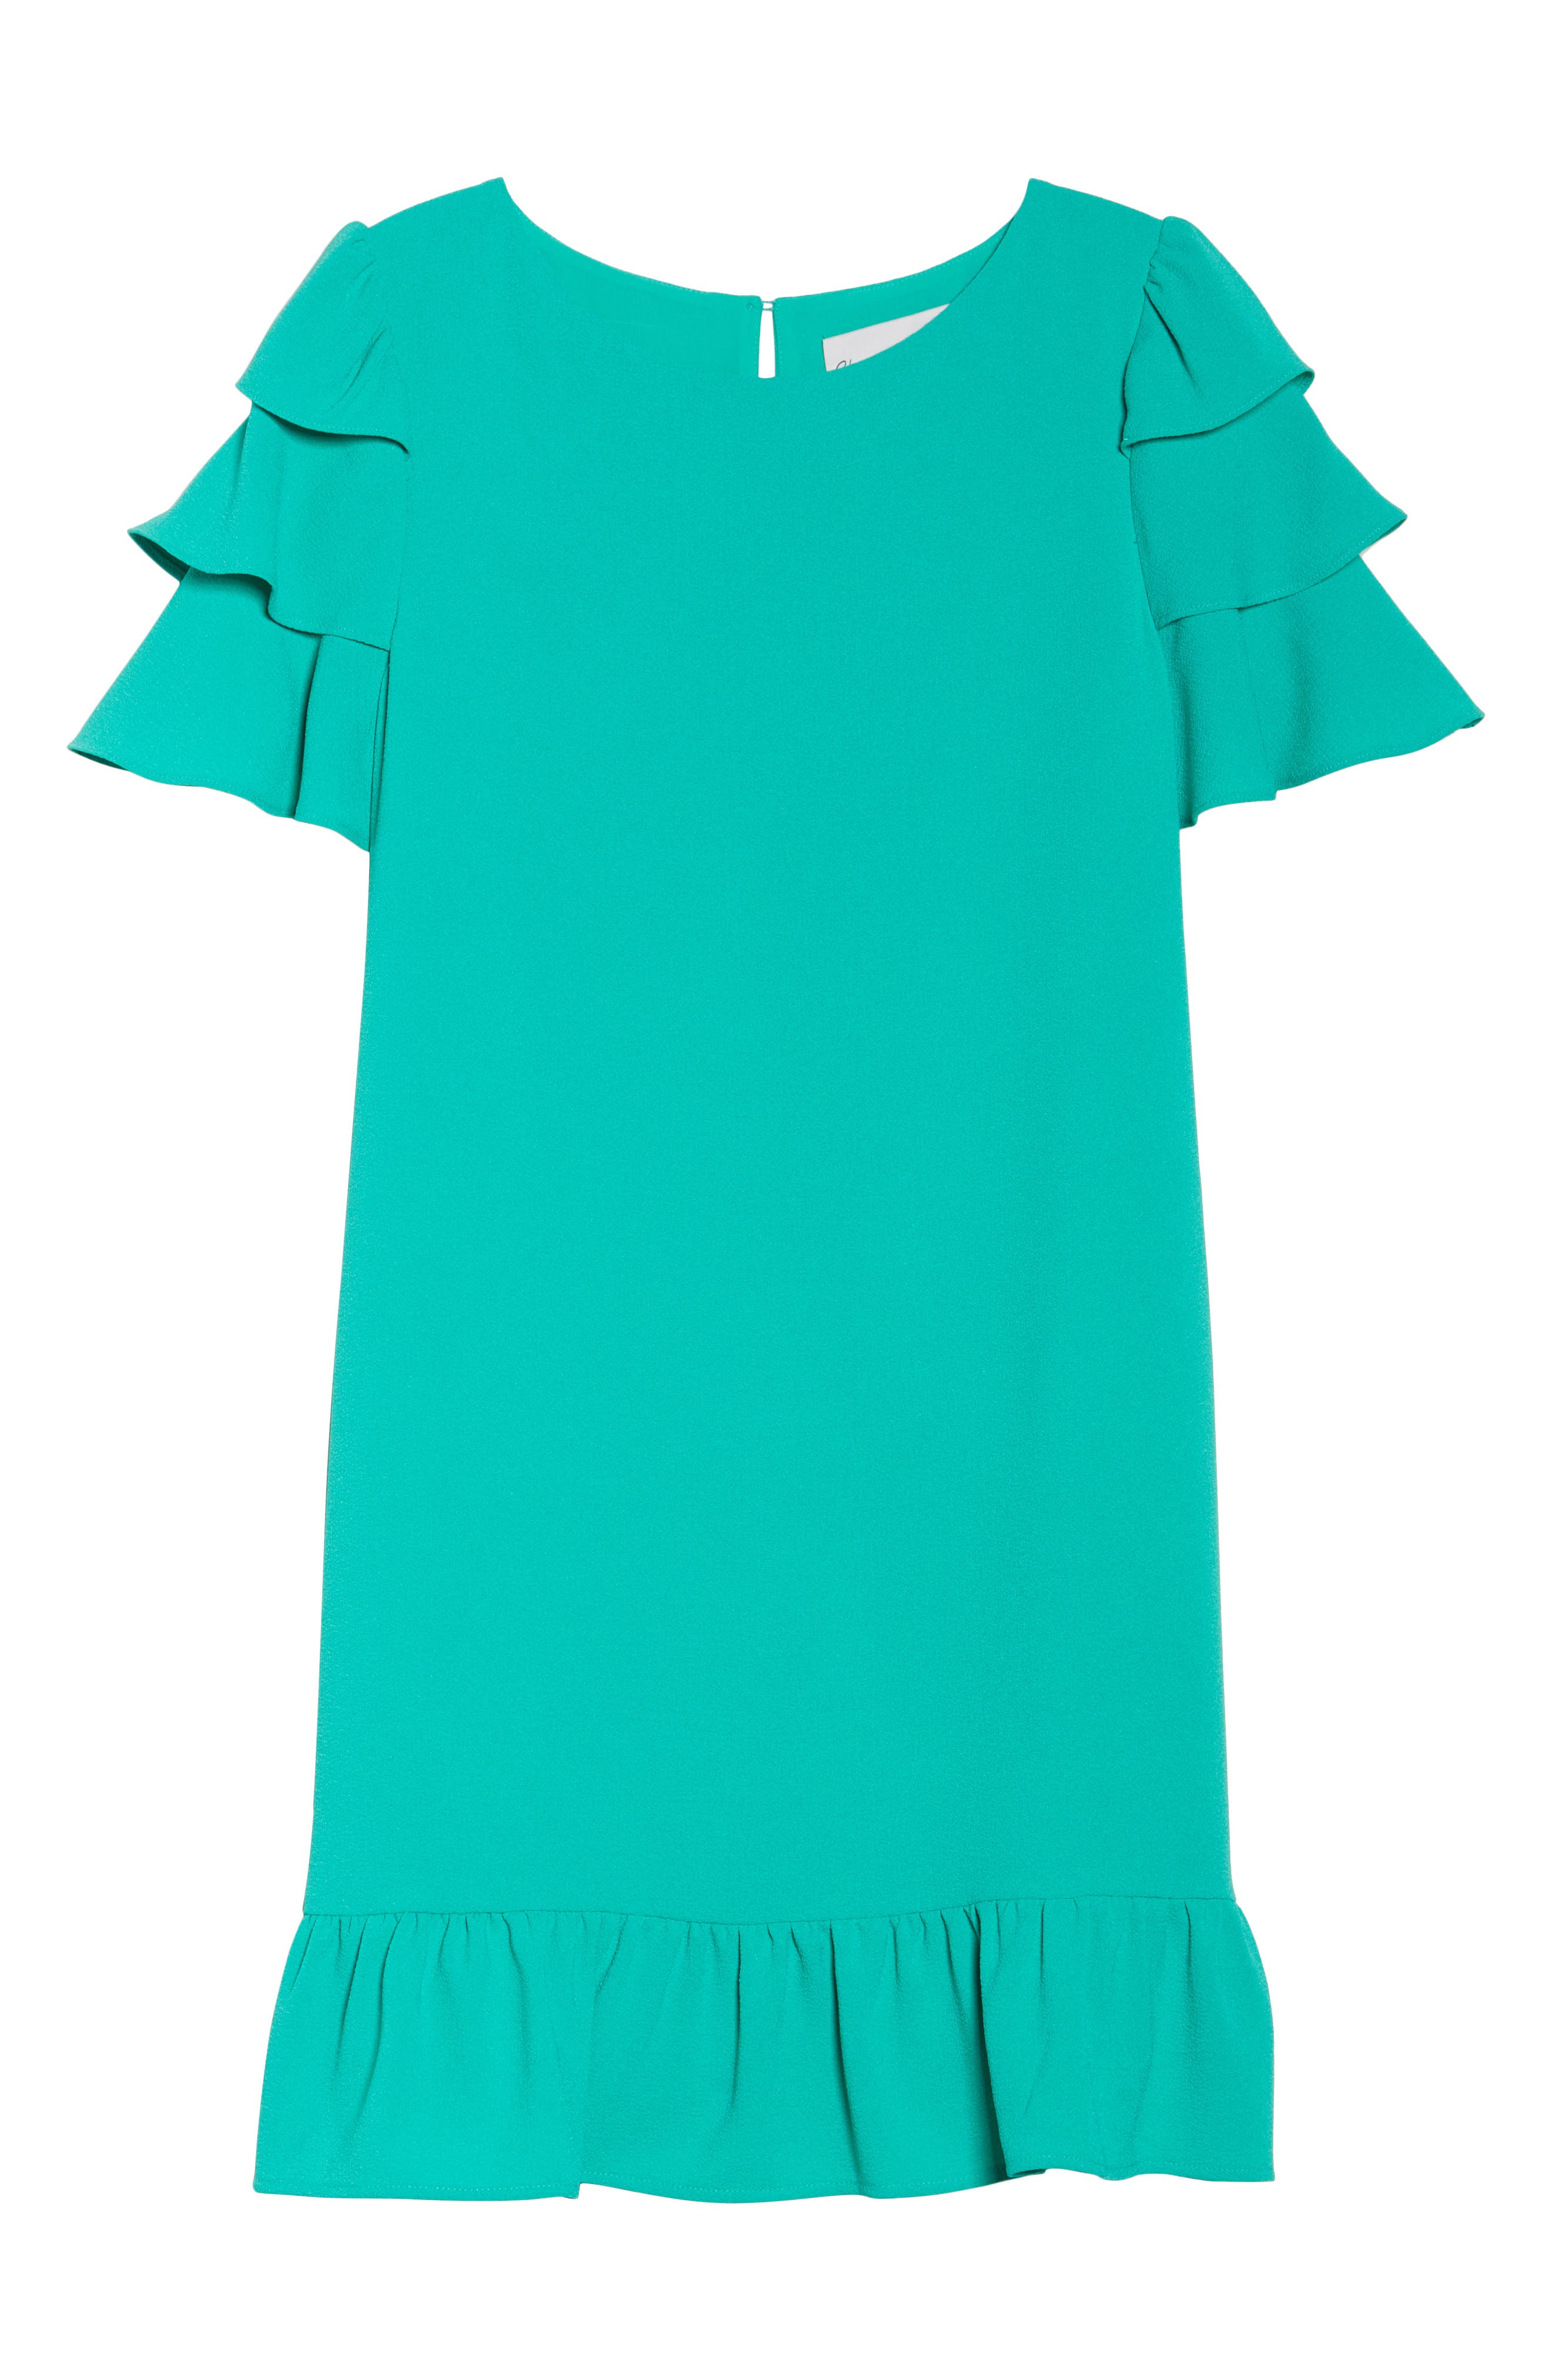 Tiered Ruffle Shift Dress,                             Alternate thumbnail 7, color,                             320